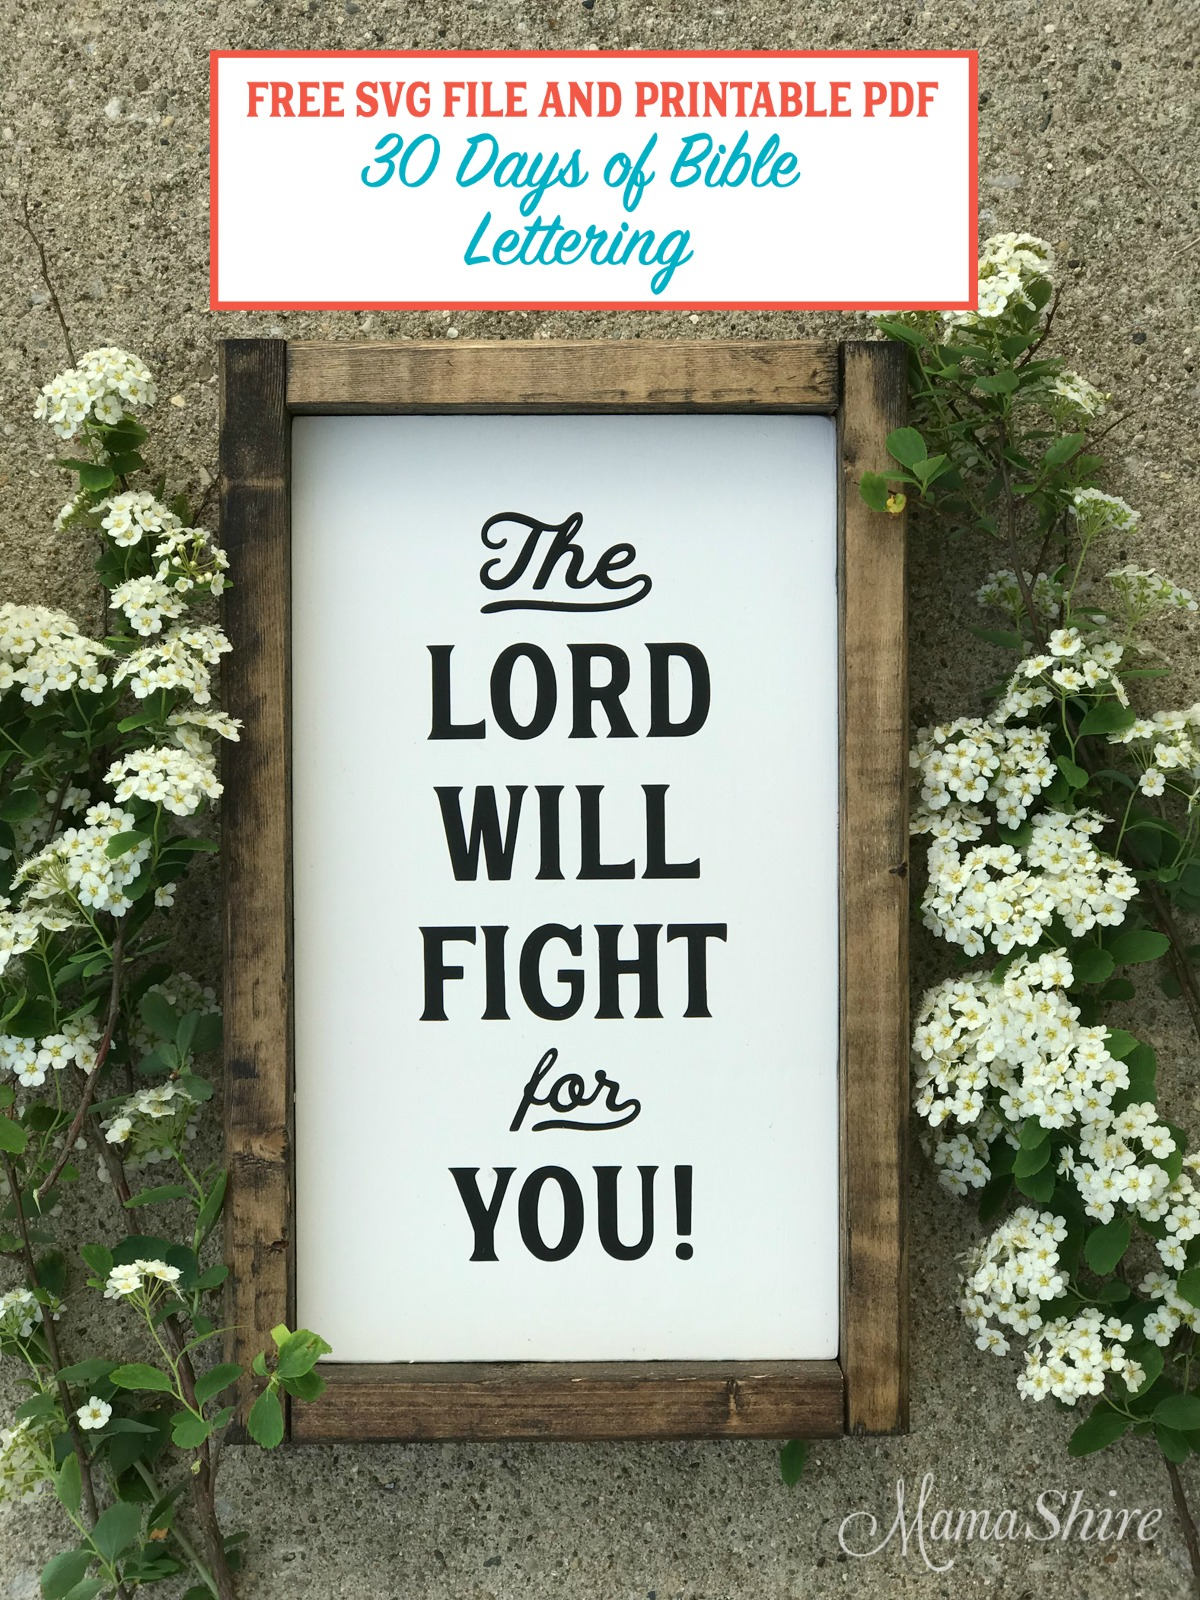 Wood sign of The Lord Will Fight For You Free SVG, DXF, and Printable PDF